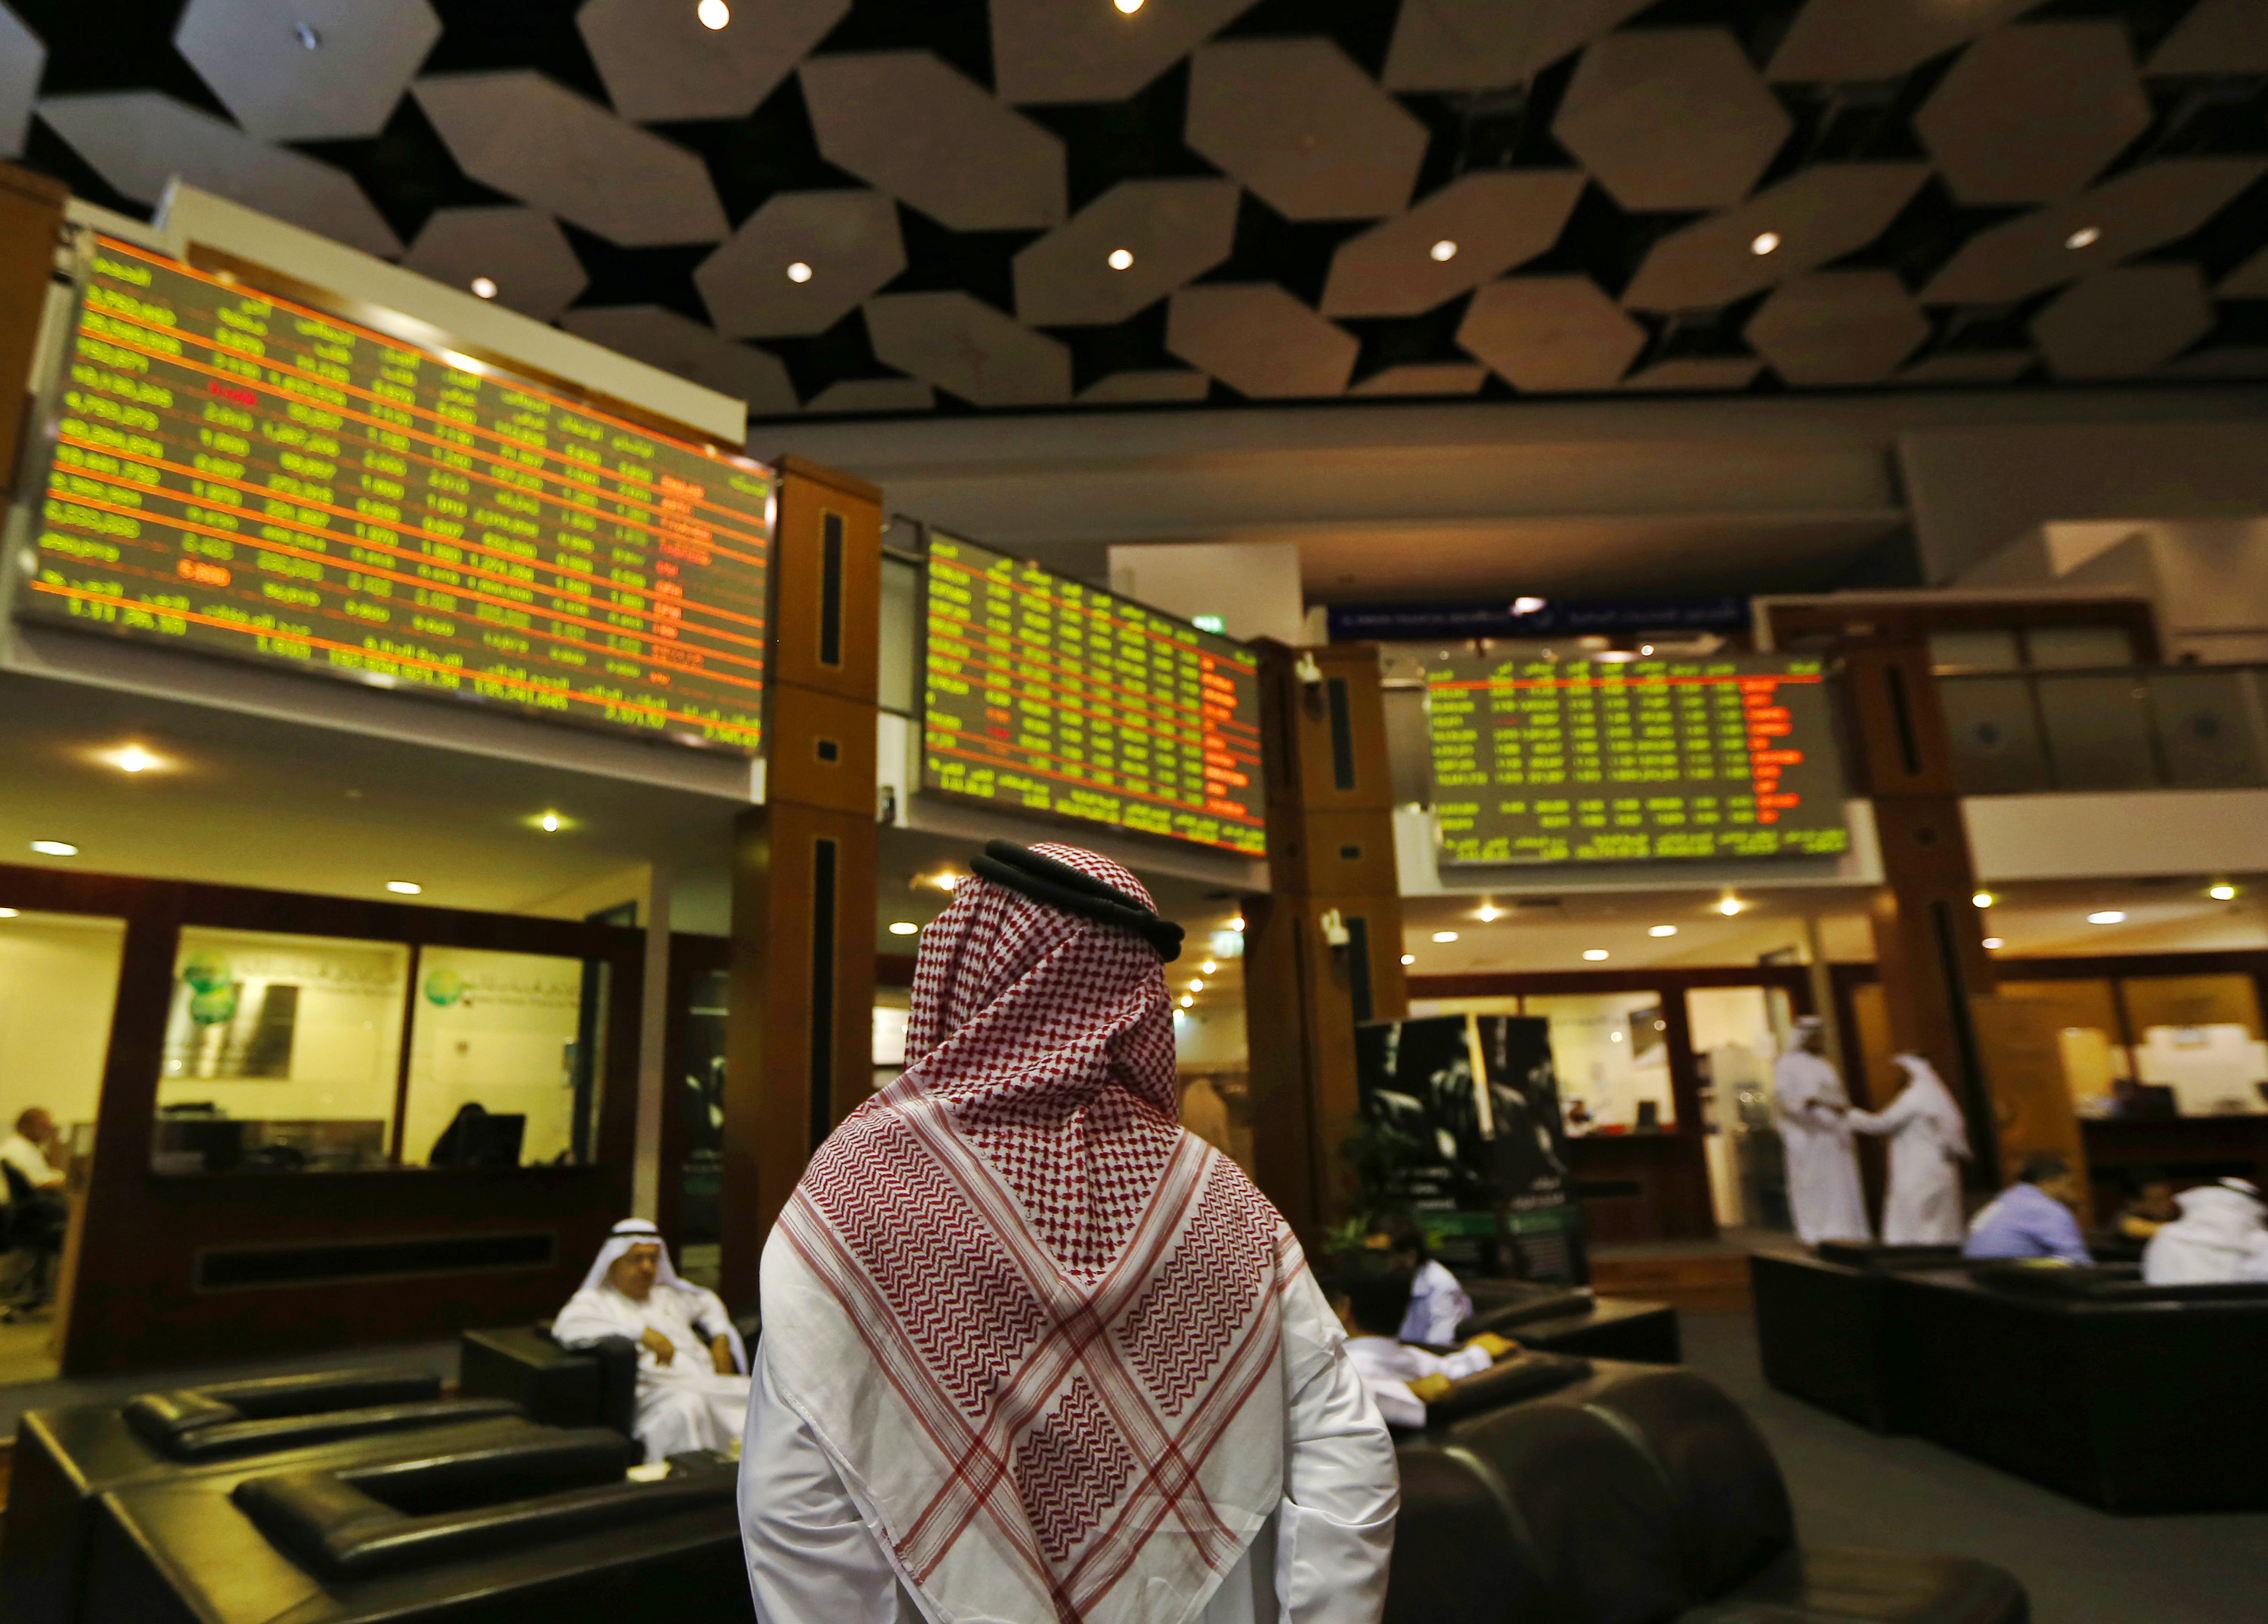 An investor looks up at screens displaying stock information at the Dubai Financial Market, June 17, 2013. The United Arab Emirates has revived a proposal to merge its two main stock exchanges in a state-backed deal that could boost trade in the local market and attract more foreign investment to the Gulf state, sources familiar with the plan said. REUTERS/Jumana El Heloueh